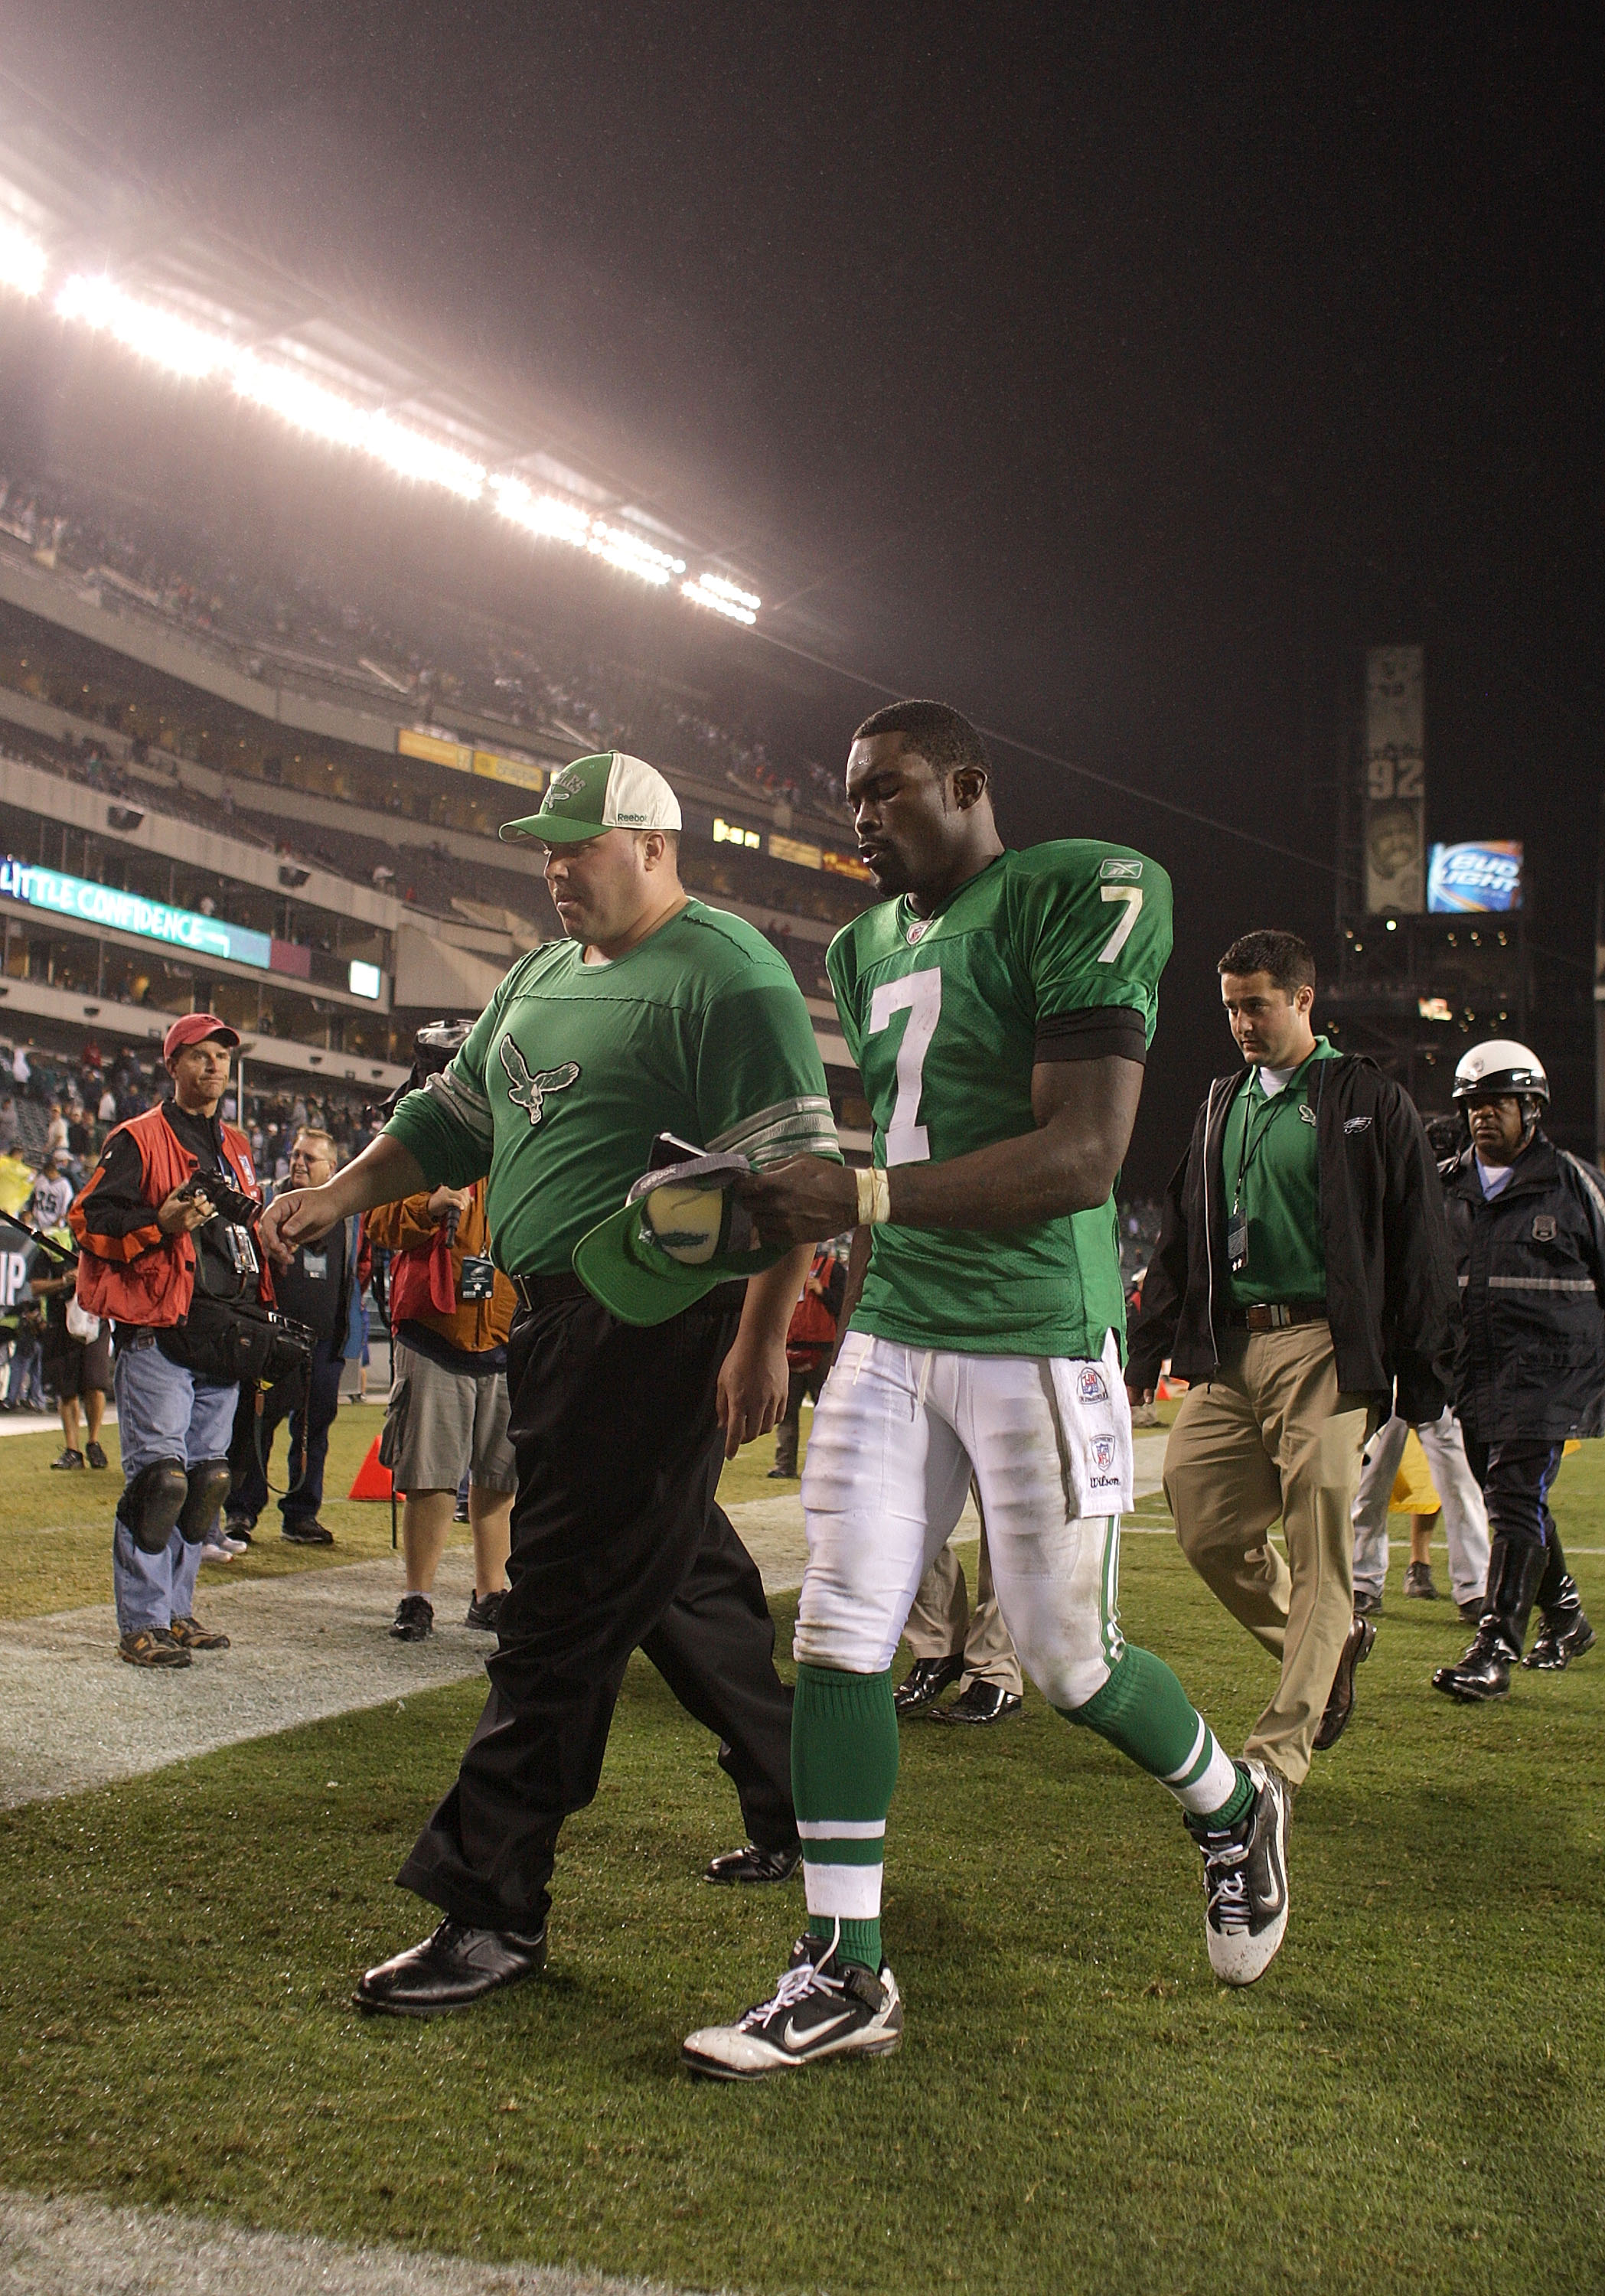 PHILADELPHIA - SEPTEMBER 12:  Michael Vick #7 of the Philadelphia Eagles  walks off the field after a loss in a game against the Green Bay Packers at Lincoln Financial Field on September 12, 2010 in Philadelphia, Pennsylvania. The Packers beat the Eagles